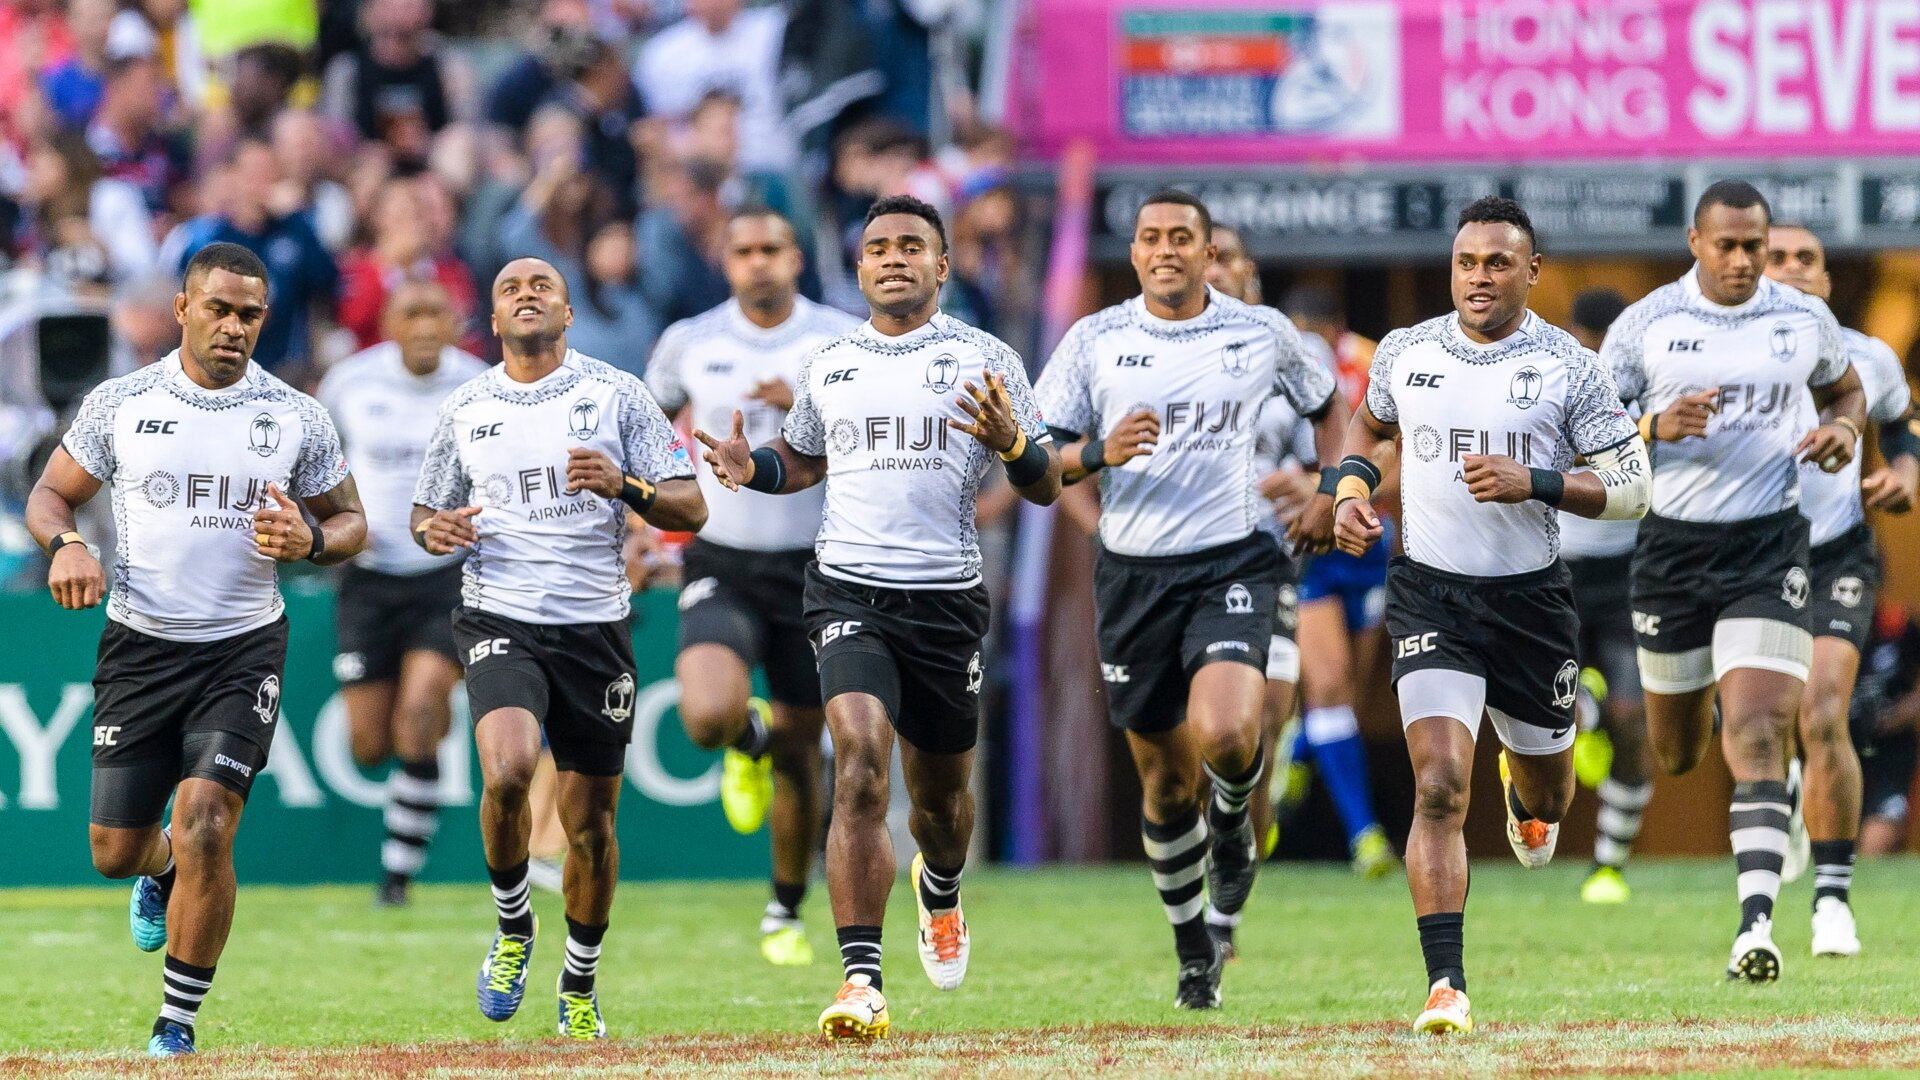 Tokyo Olympics will see Fijian to defend their gold medal